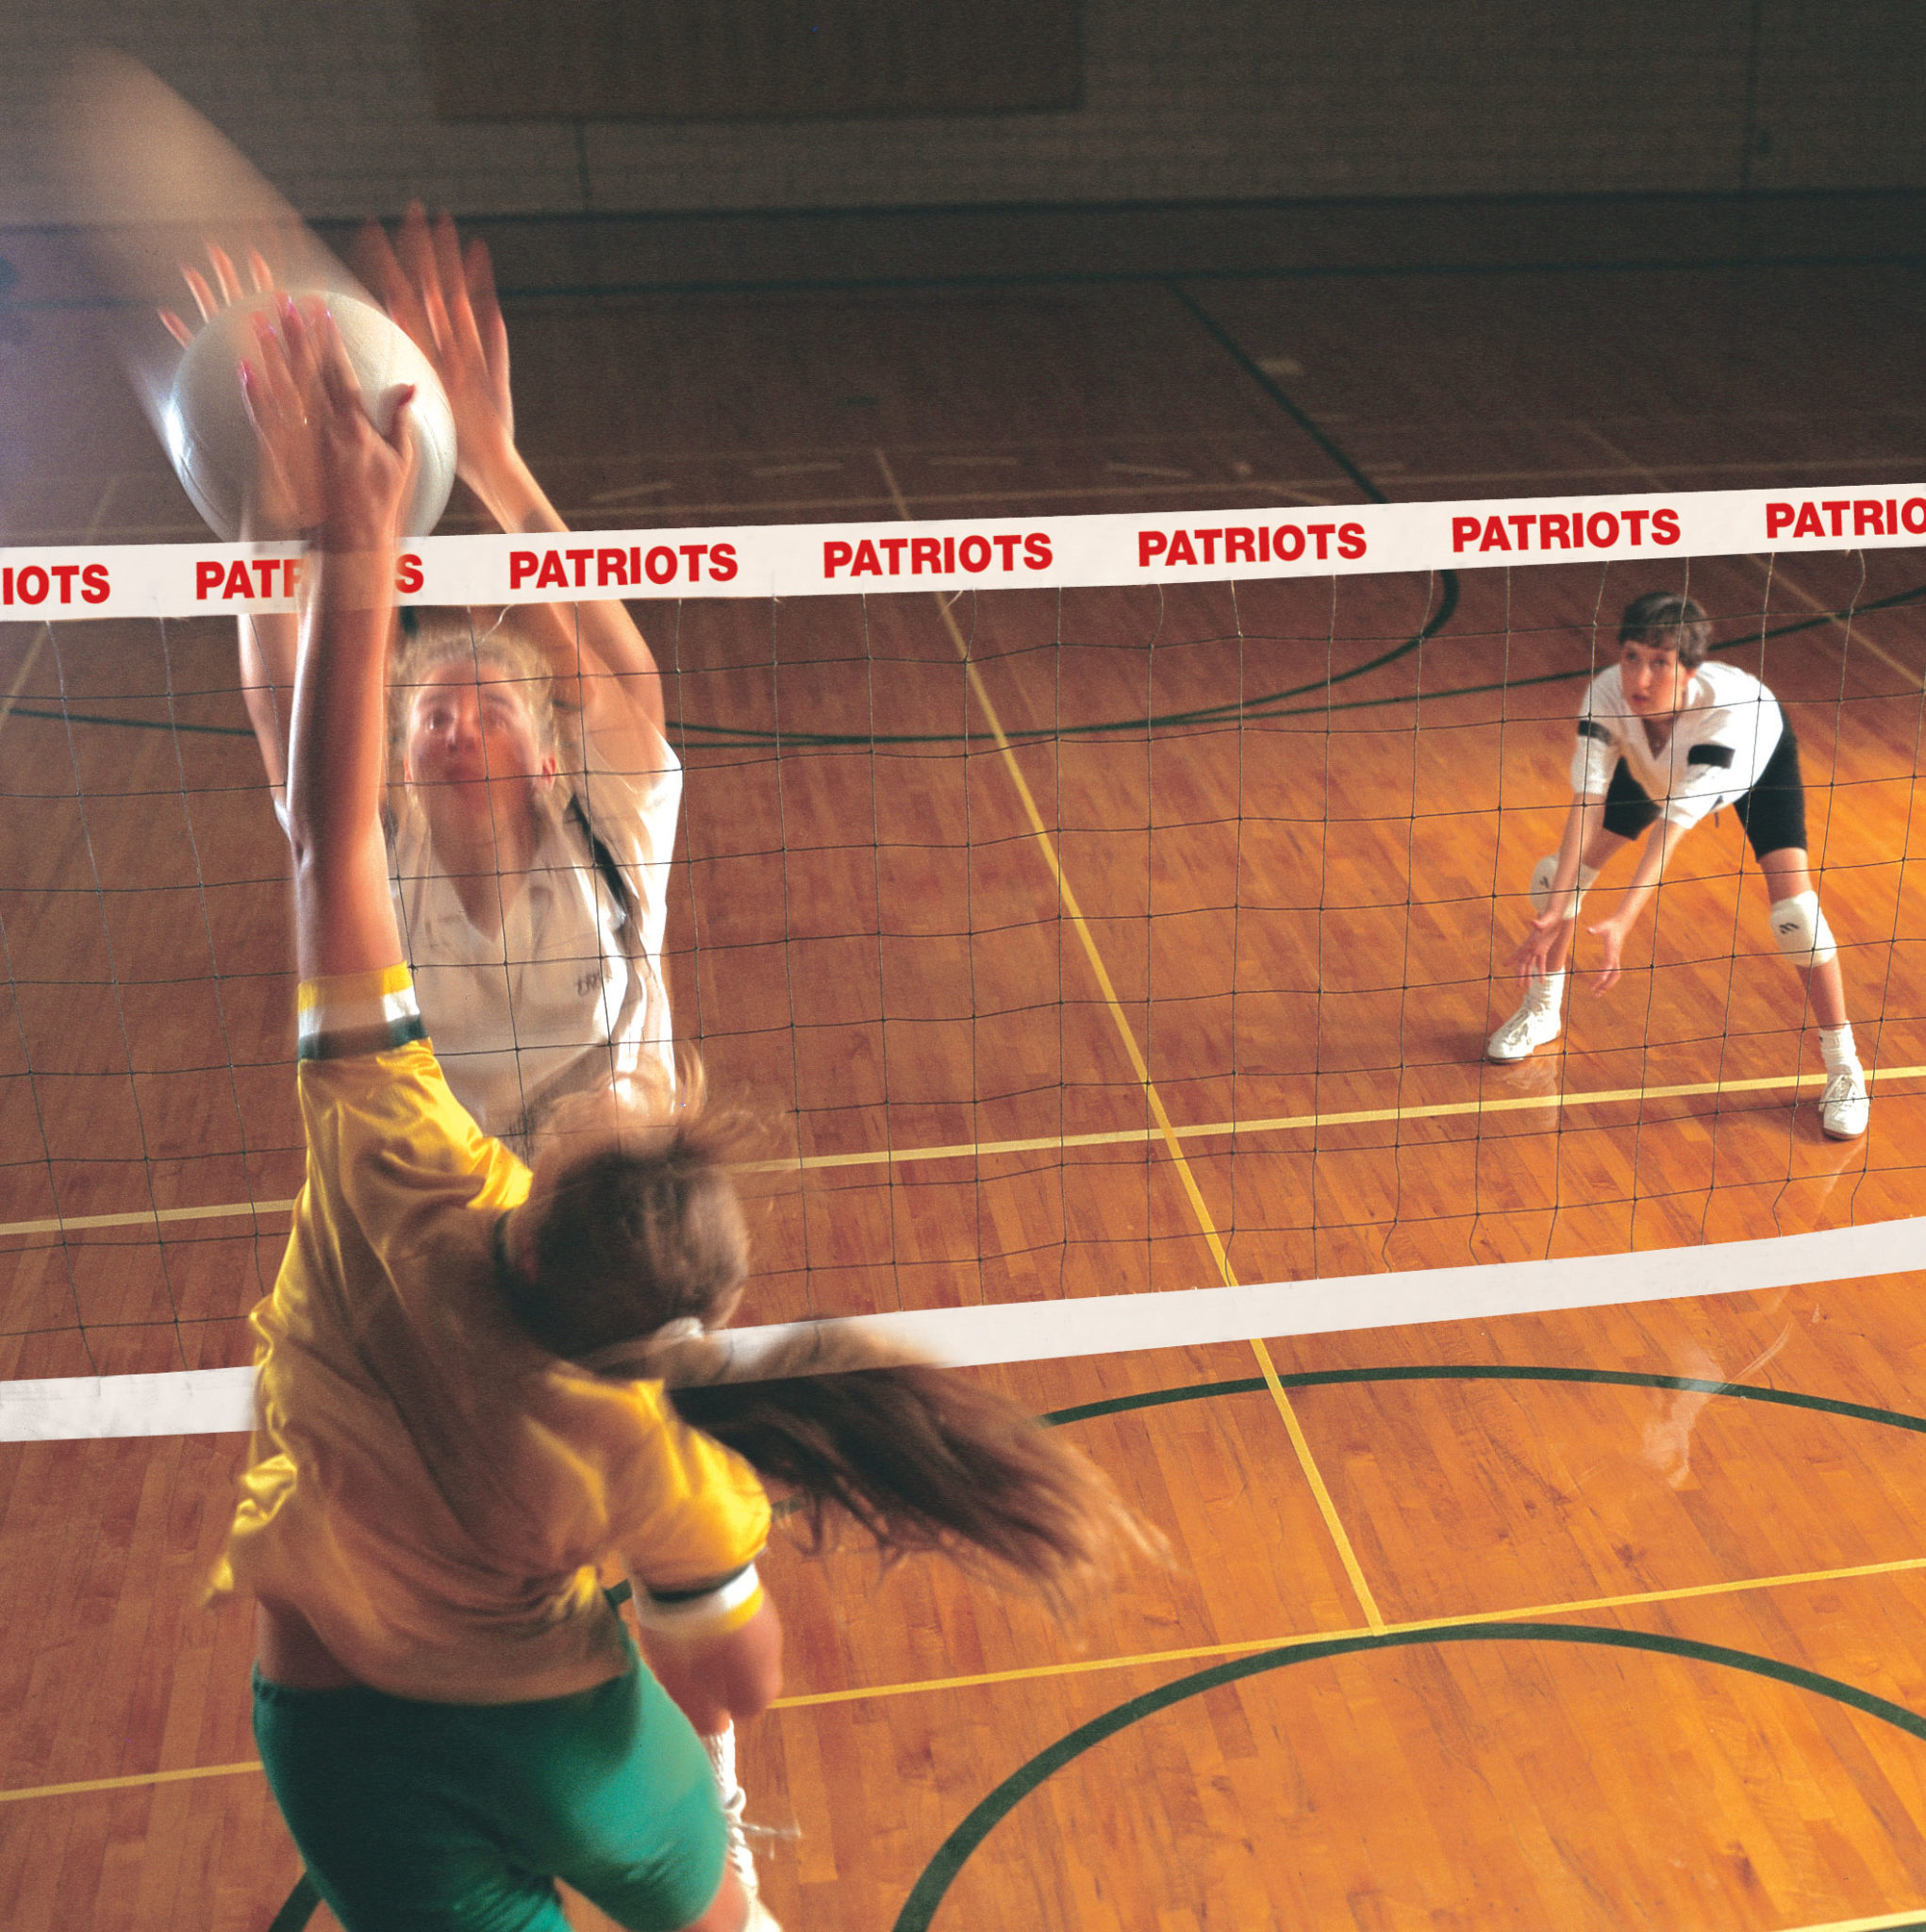 Sport Pride Printed Volleyball Net Band - Bison, Inc.